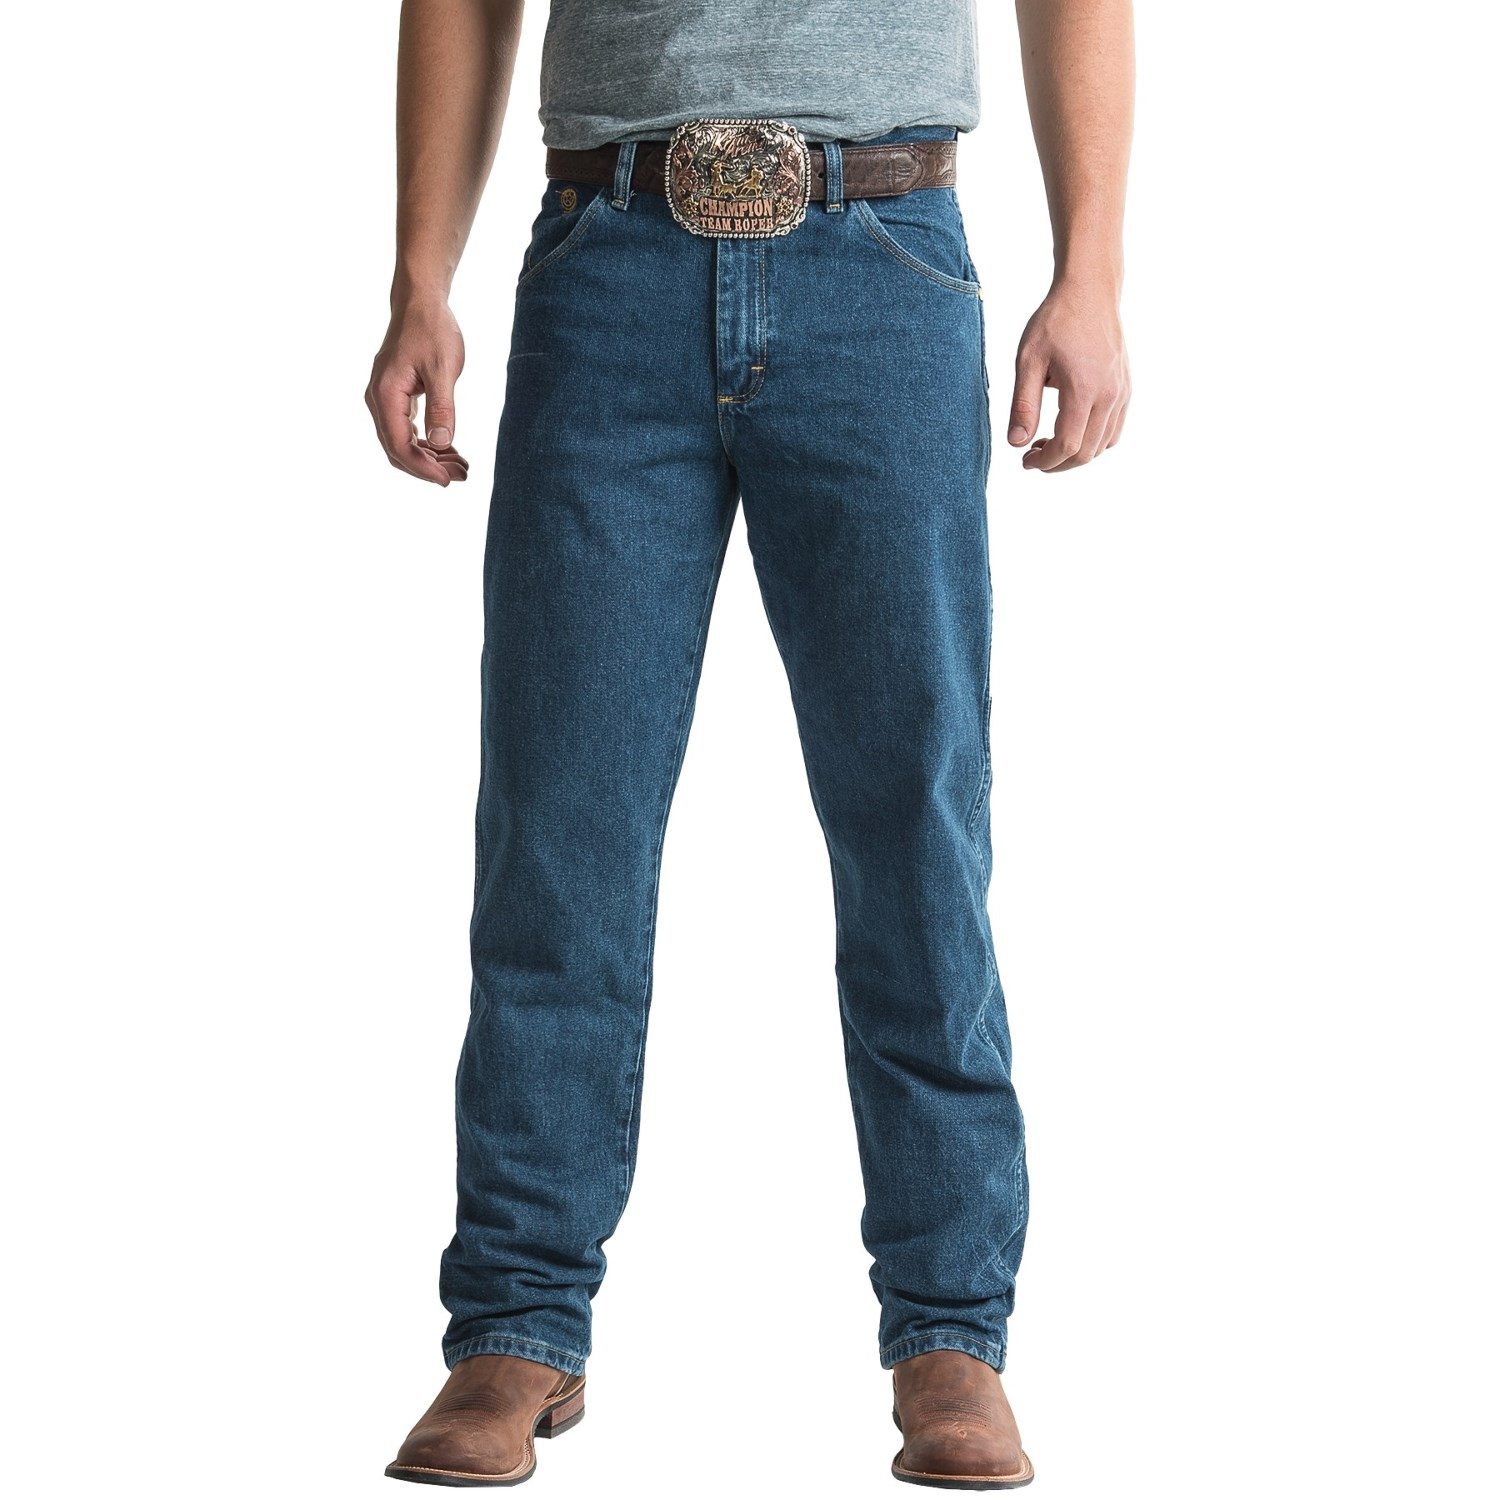 4110f623 Wrangler George Strait Cowboy Cut® Jeans - Relaxed Fit (For Men) in Heavy  ...